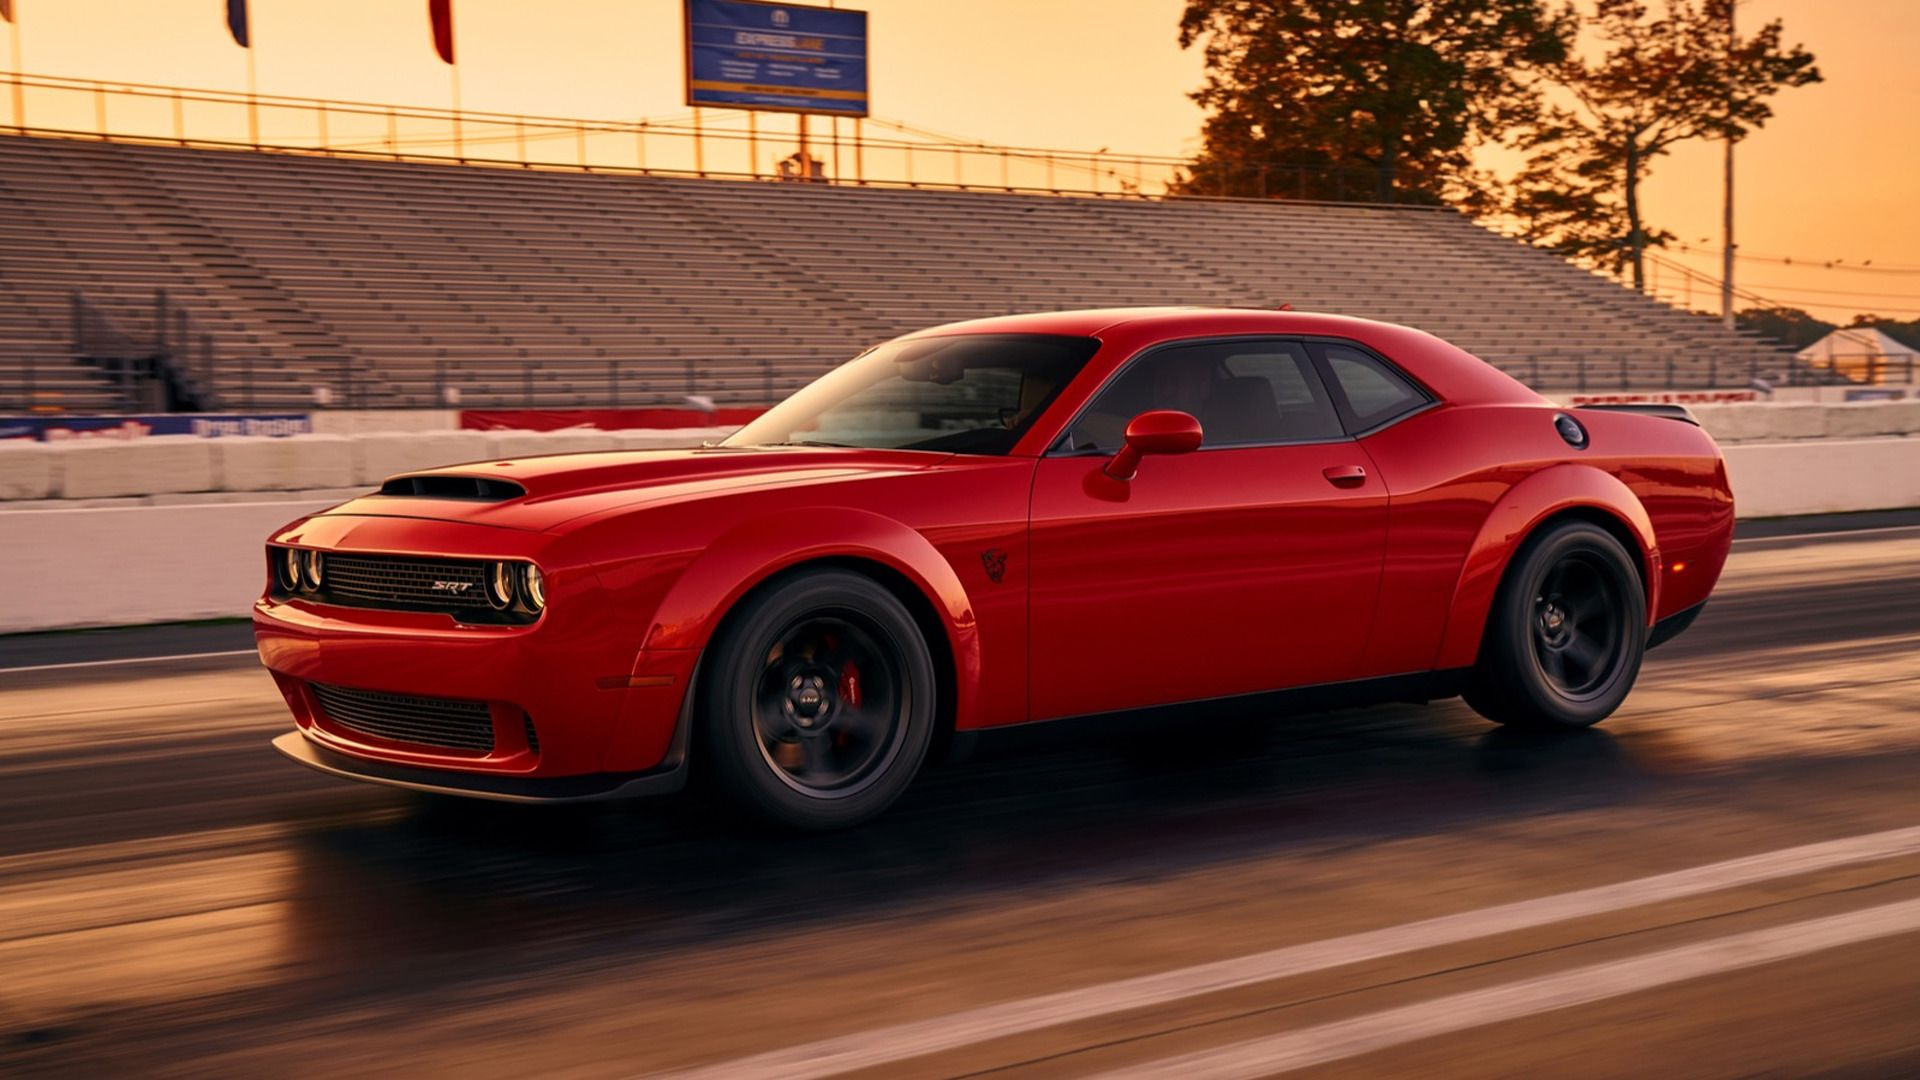 2018 dodge demon leaked image will it have over 1 000 hp revealed apr 11th